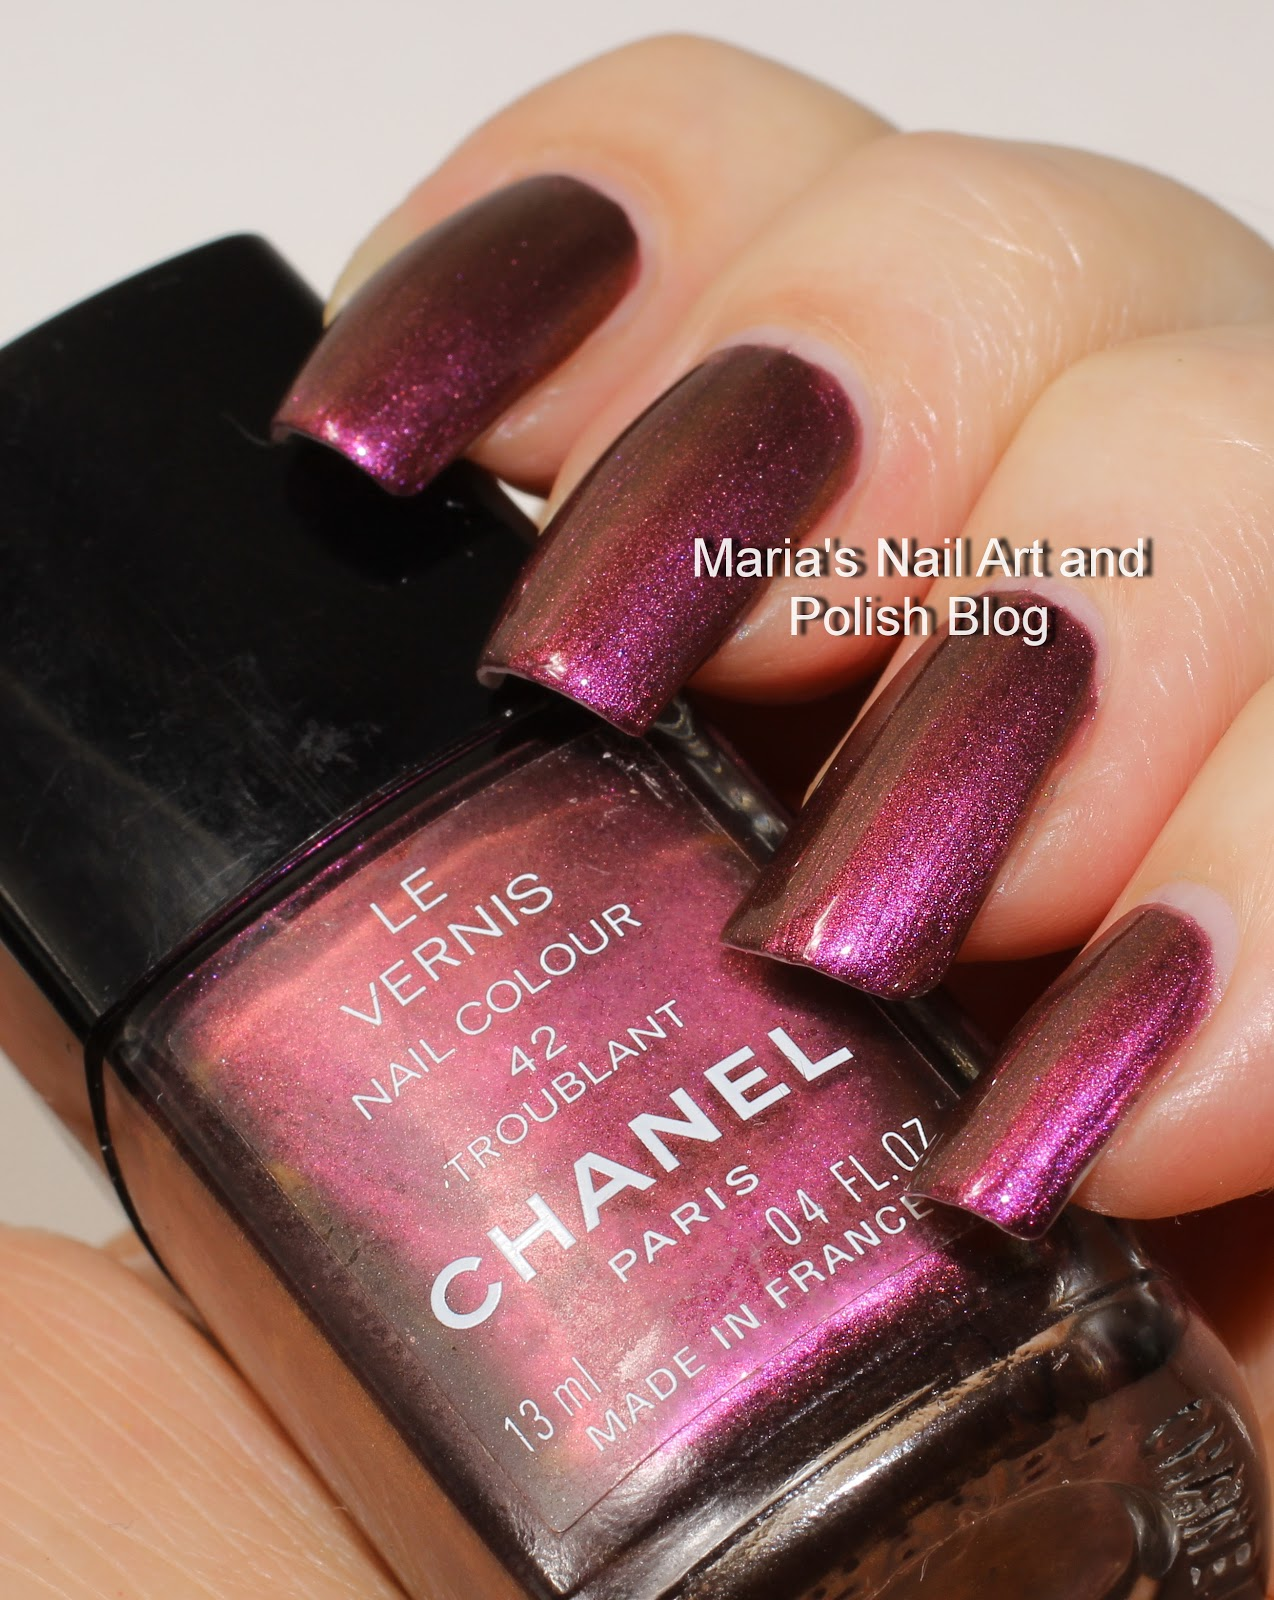 Marias Nail Art and Polish Blog: Chanel Troublant 42 swatches - vintage